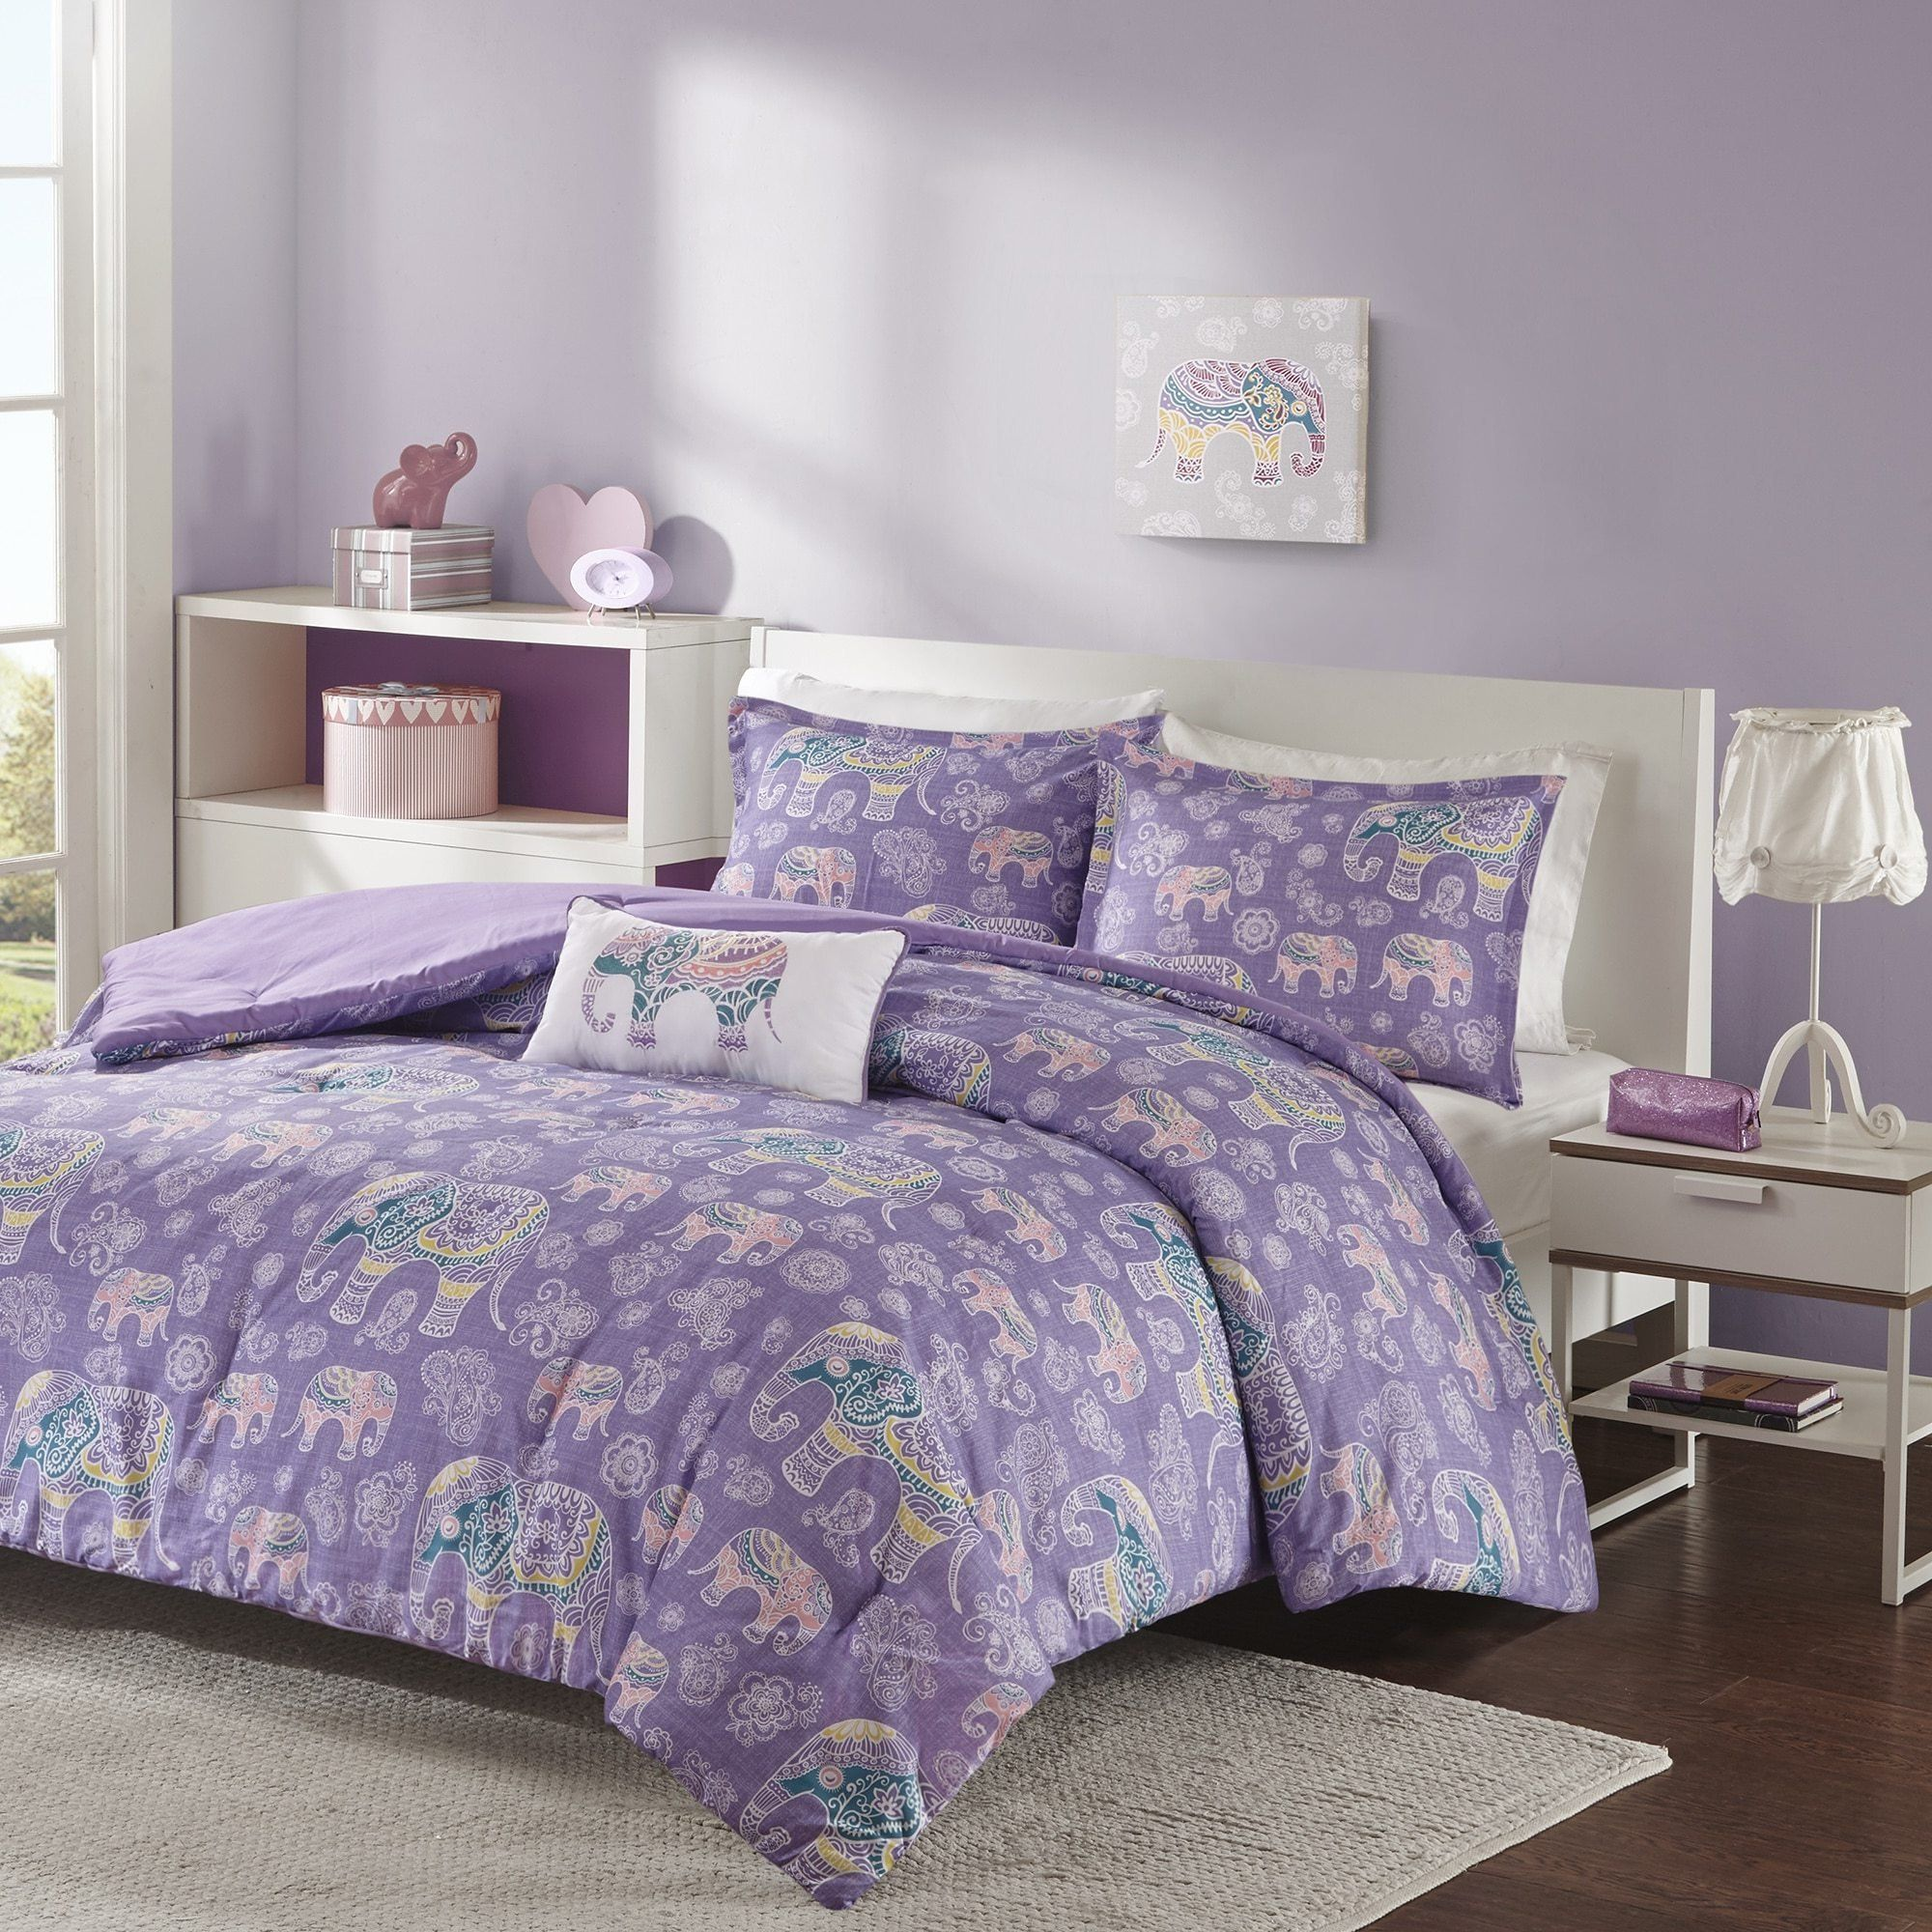 4 Piece Girls Light Purple Boho Chic Elephant Theme Comforter Full Queen Set Beautiful All Over Bohem Floral Bedding Twin Xl Comforter Elephant Theme